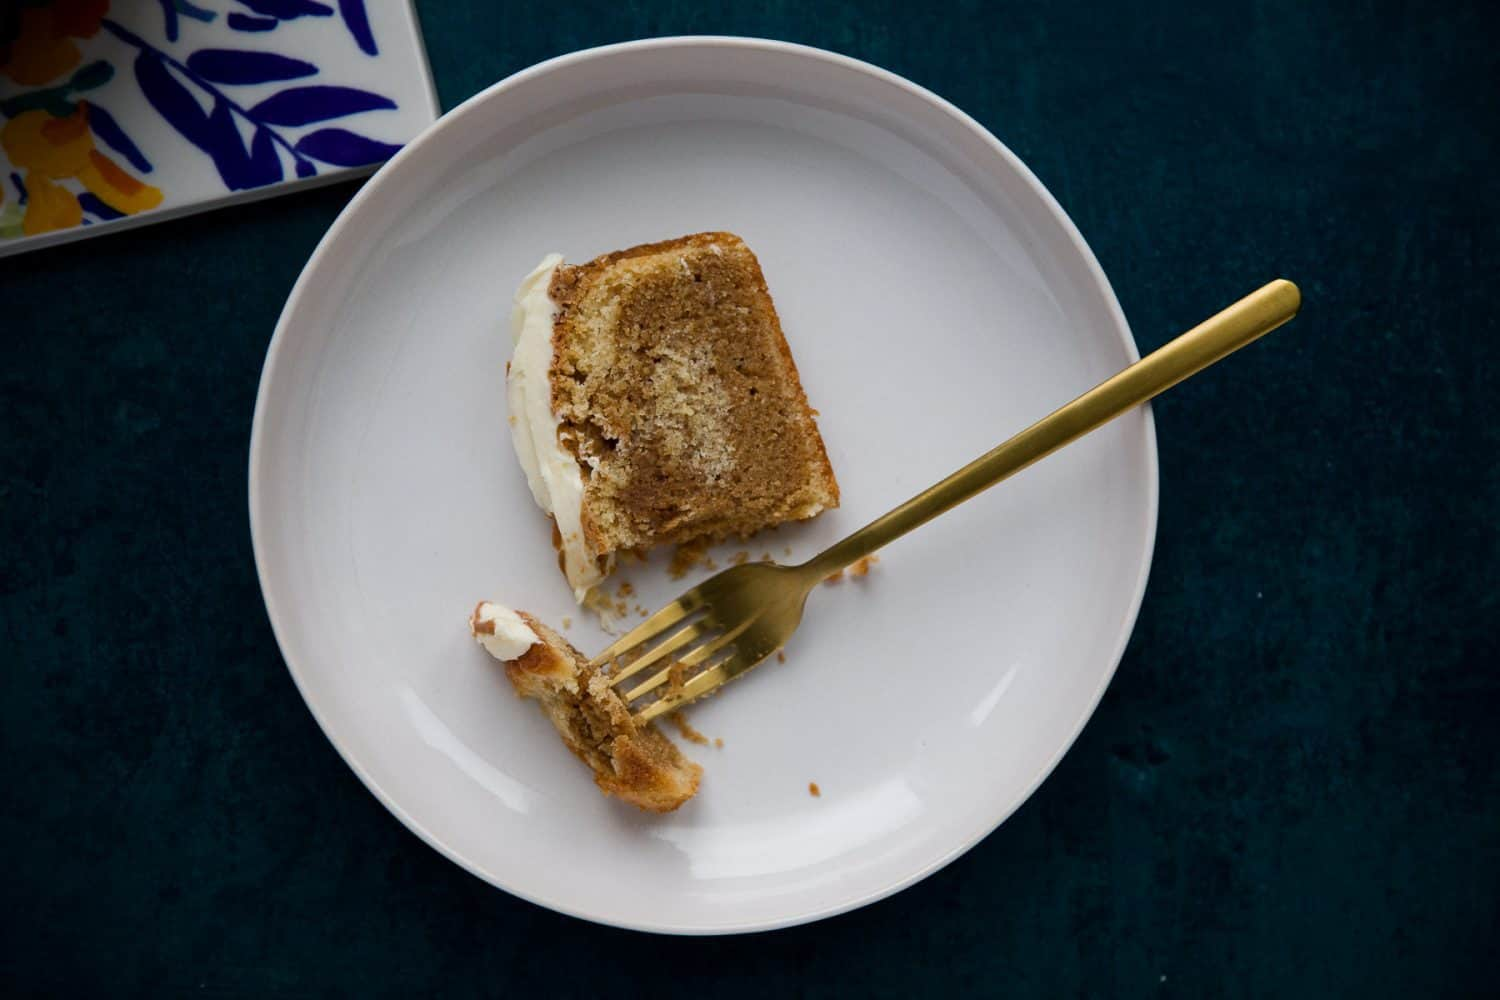 A slice of Biscoff Cake on a white plate with a gold fork.